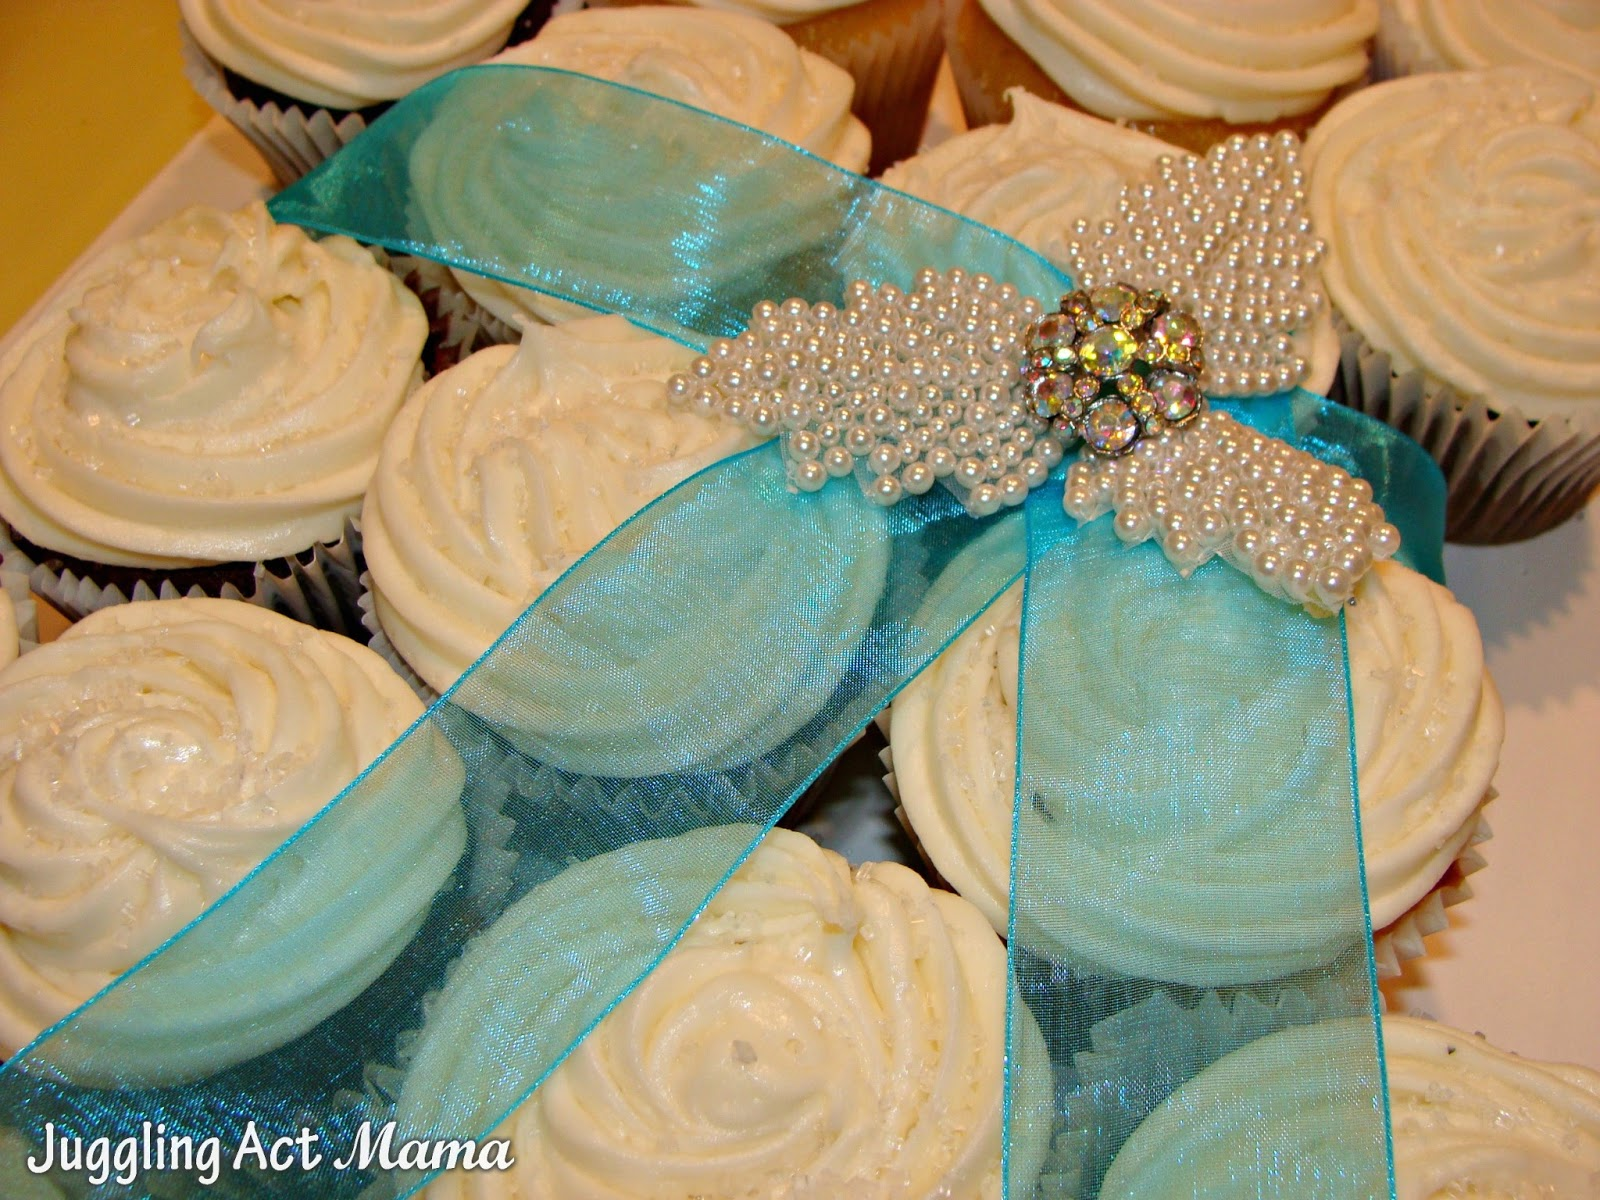 Bridal Shower Cup Cake Wedding Dress Juggling Act Mama